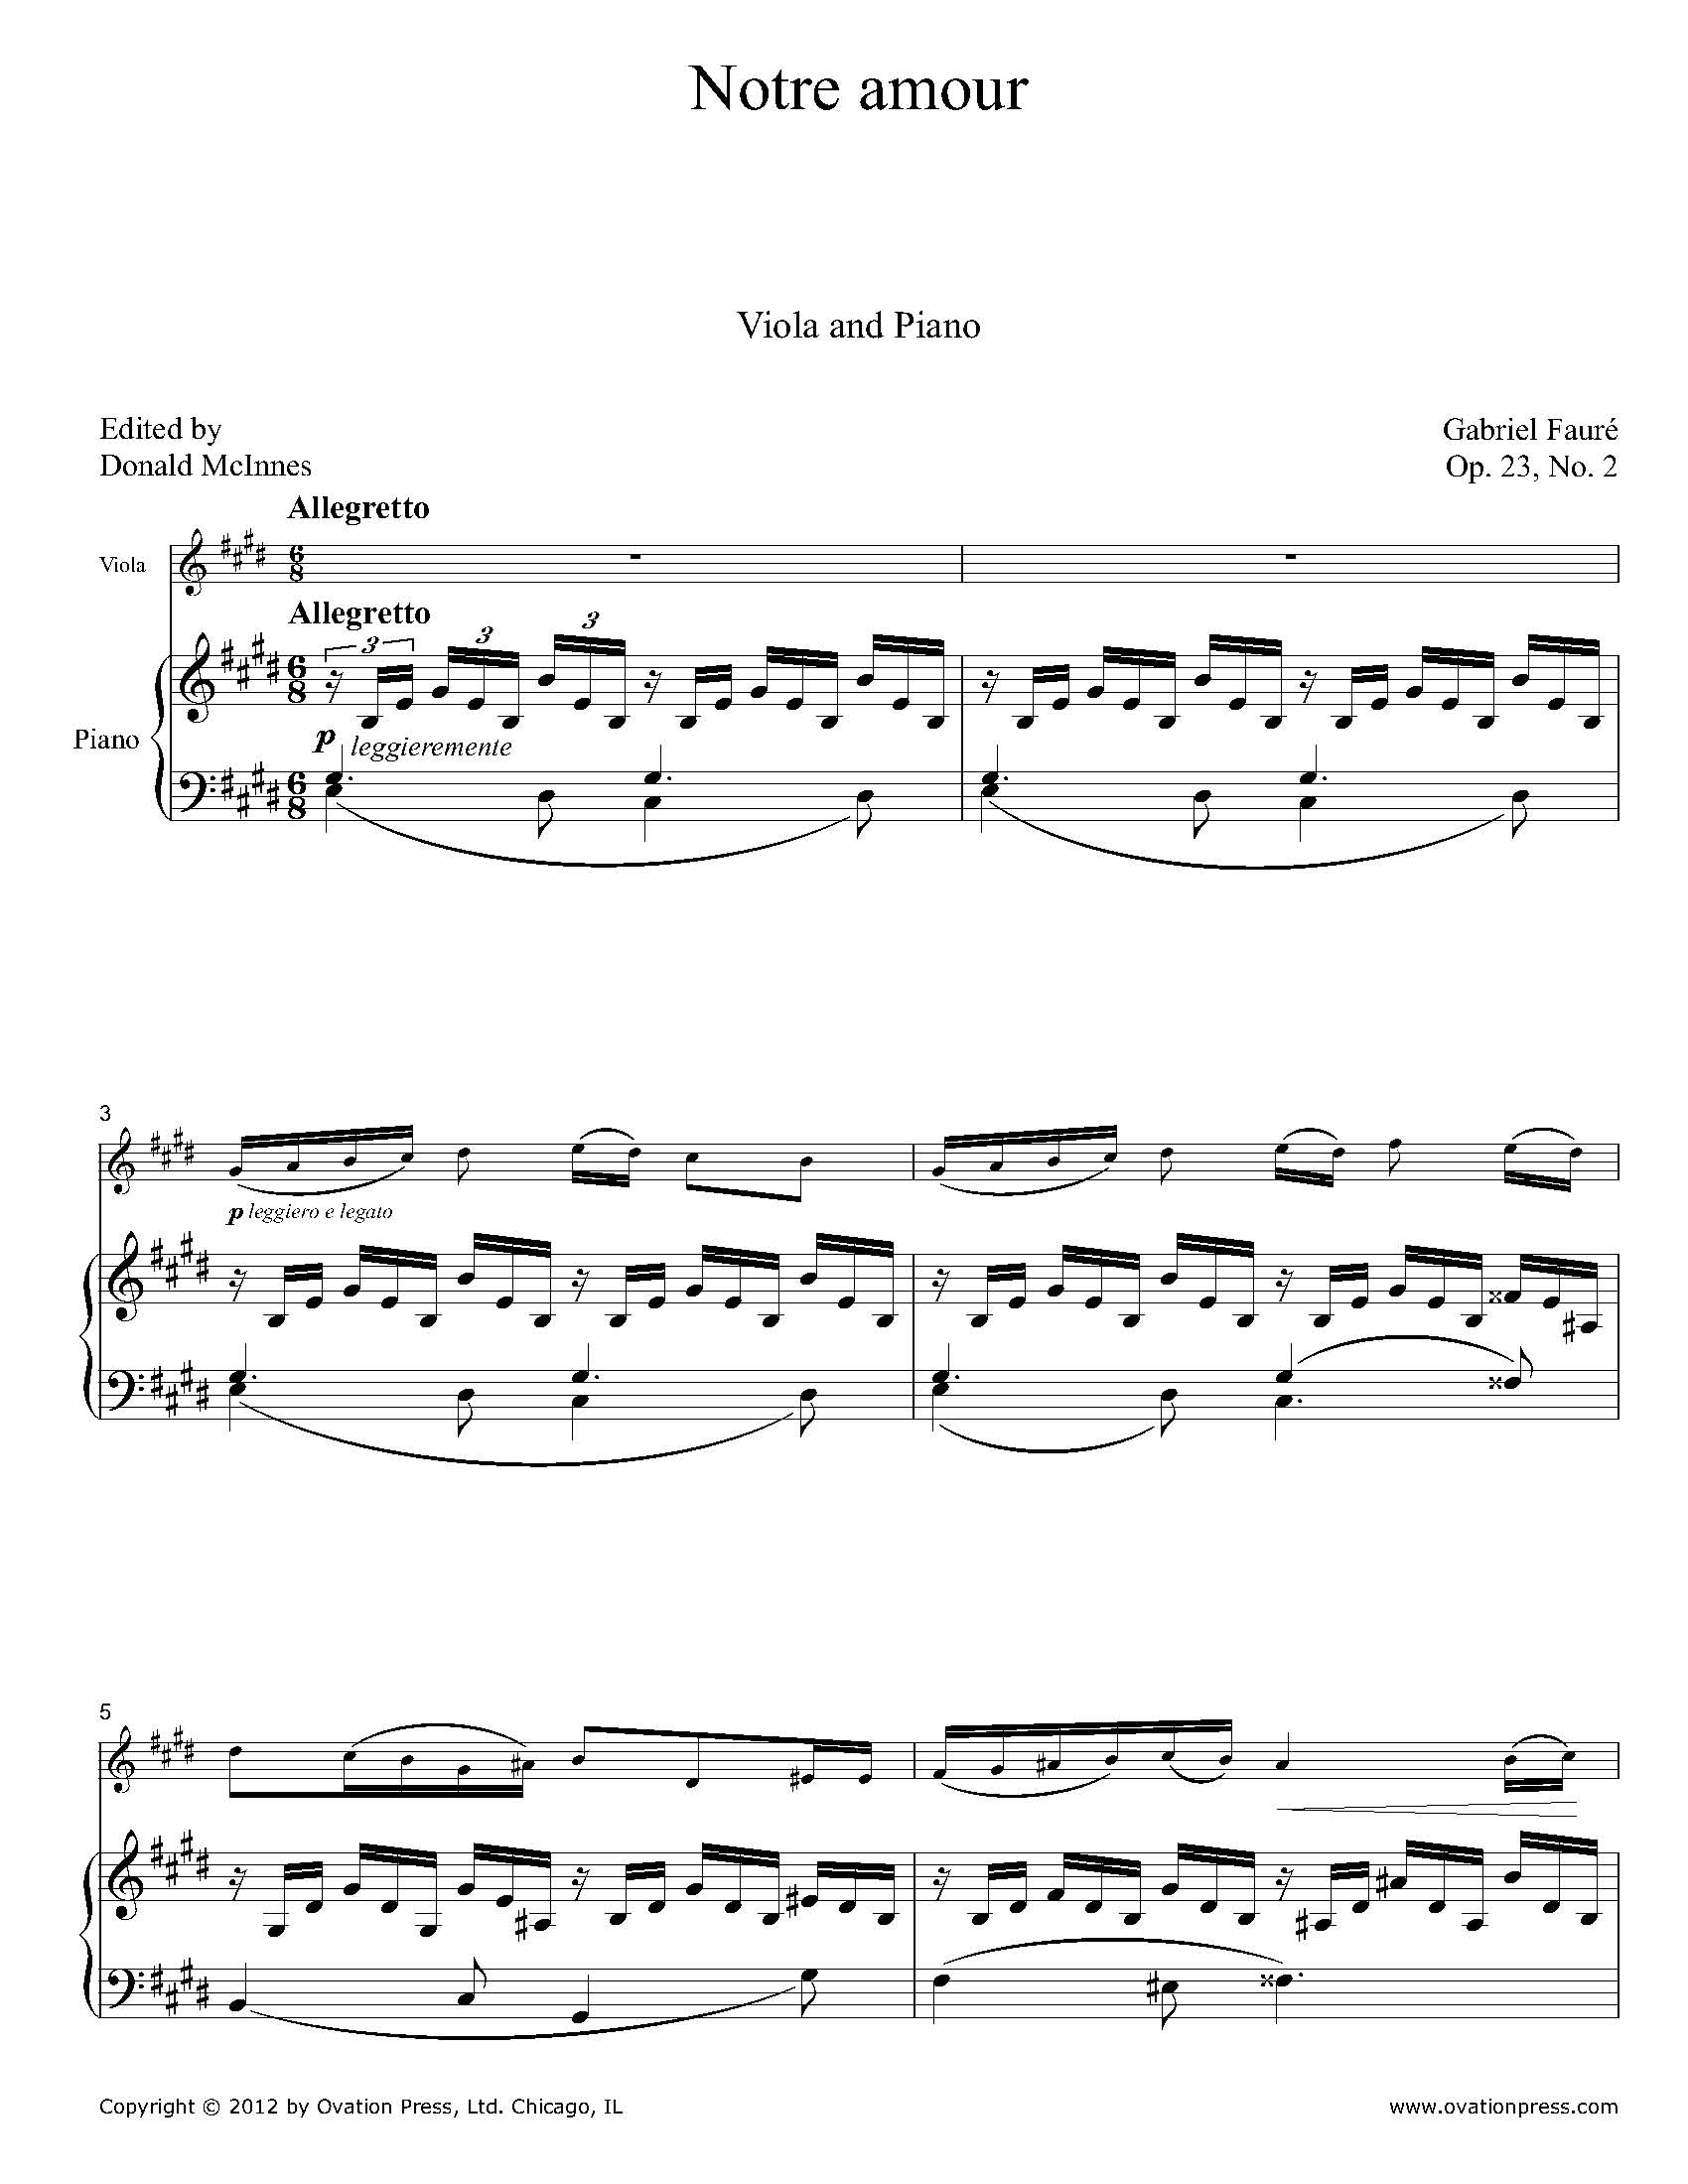 Fauré Notre amour for Viola and Piano